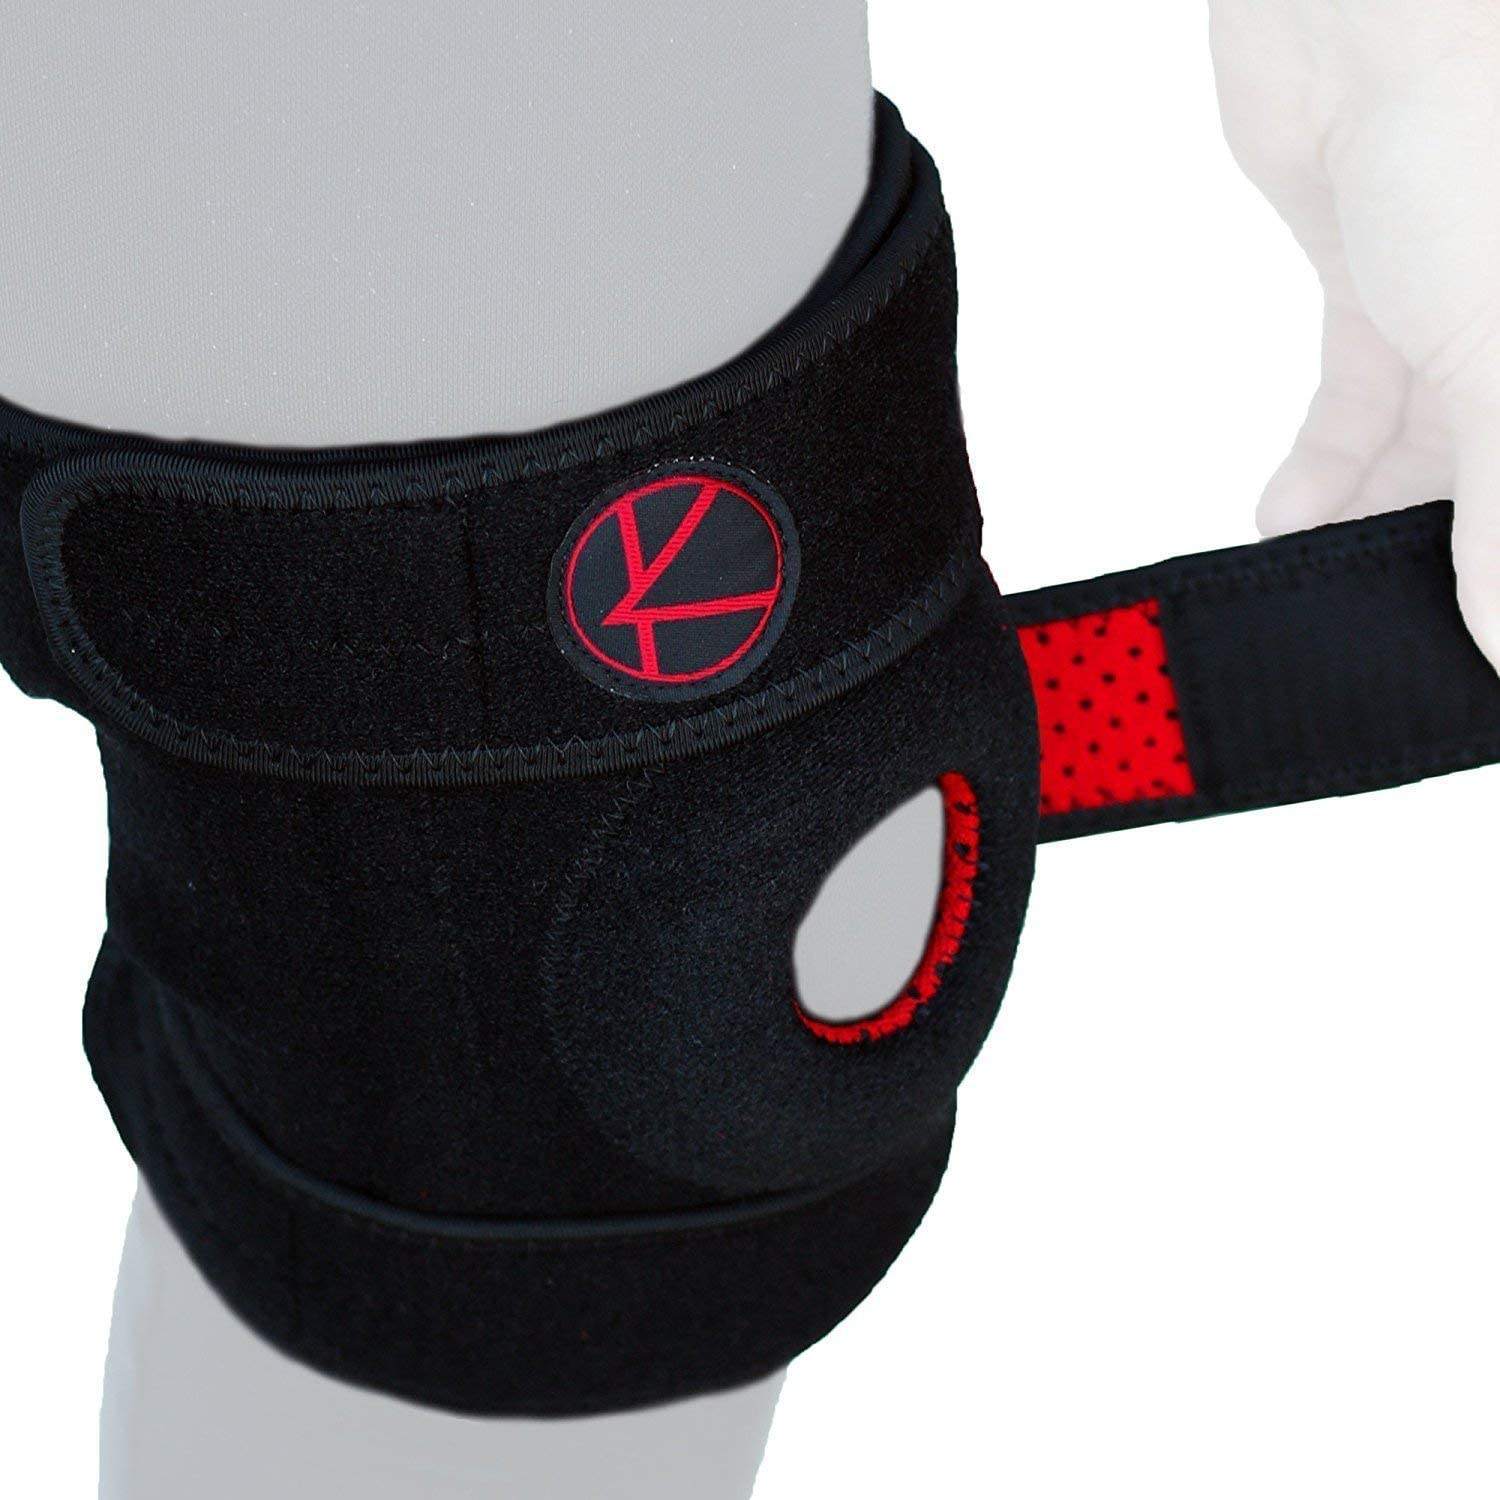 Adjustable Knee Brace Support